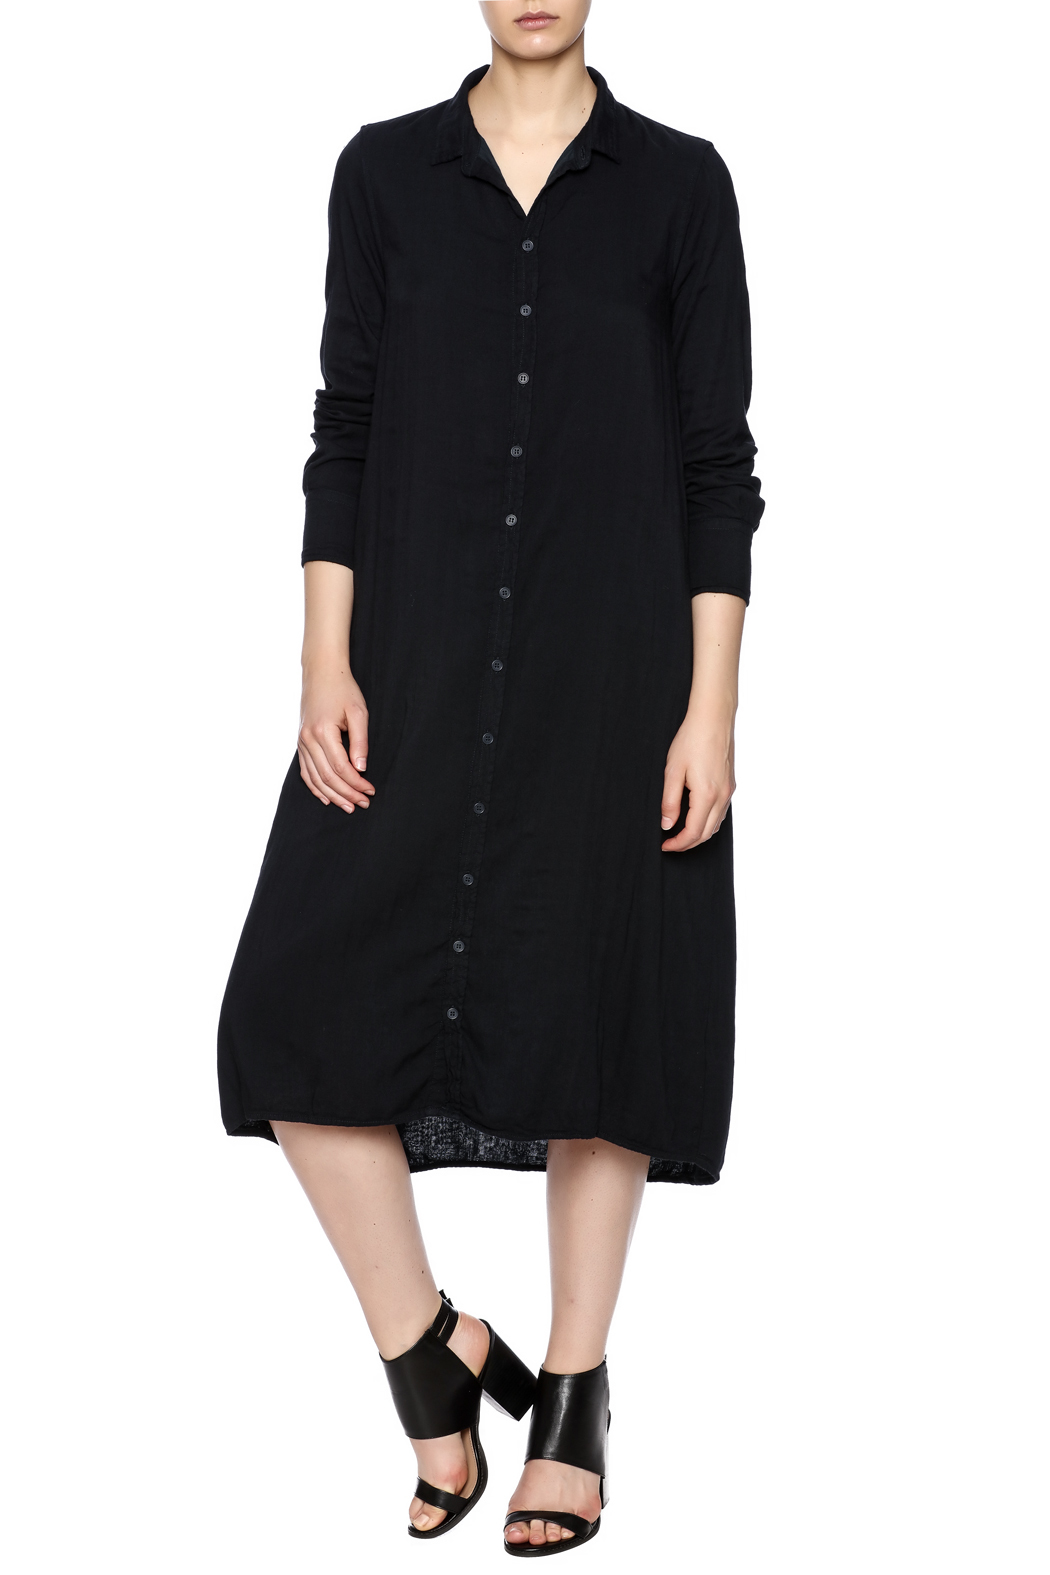 CP Shades Navy Shirt dress - Main Image